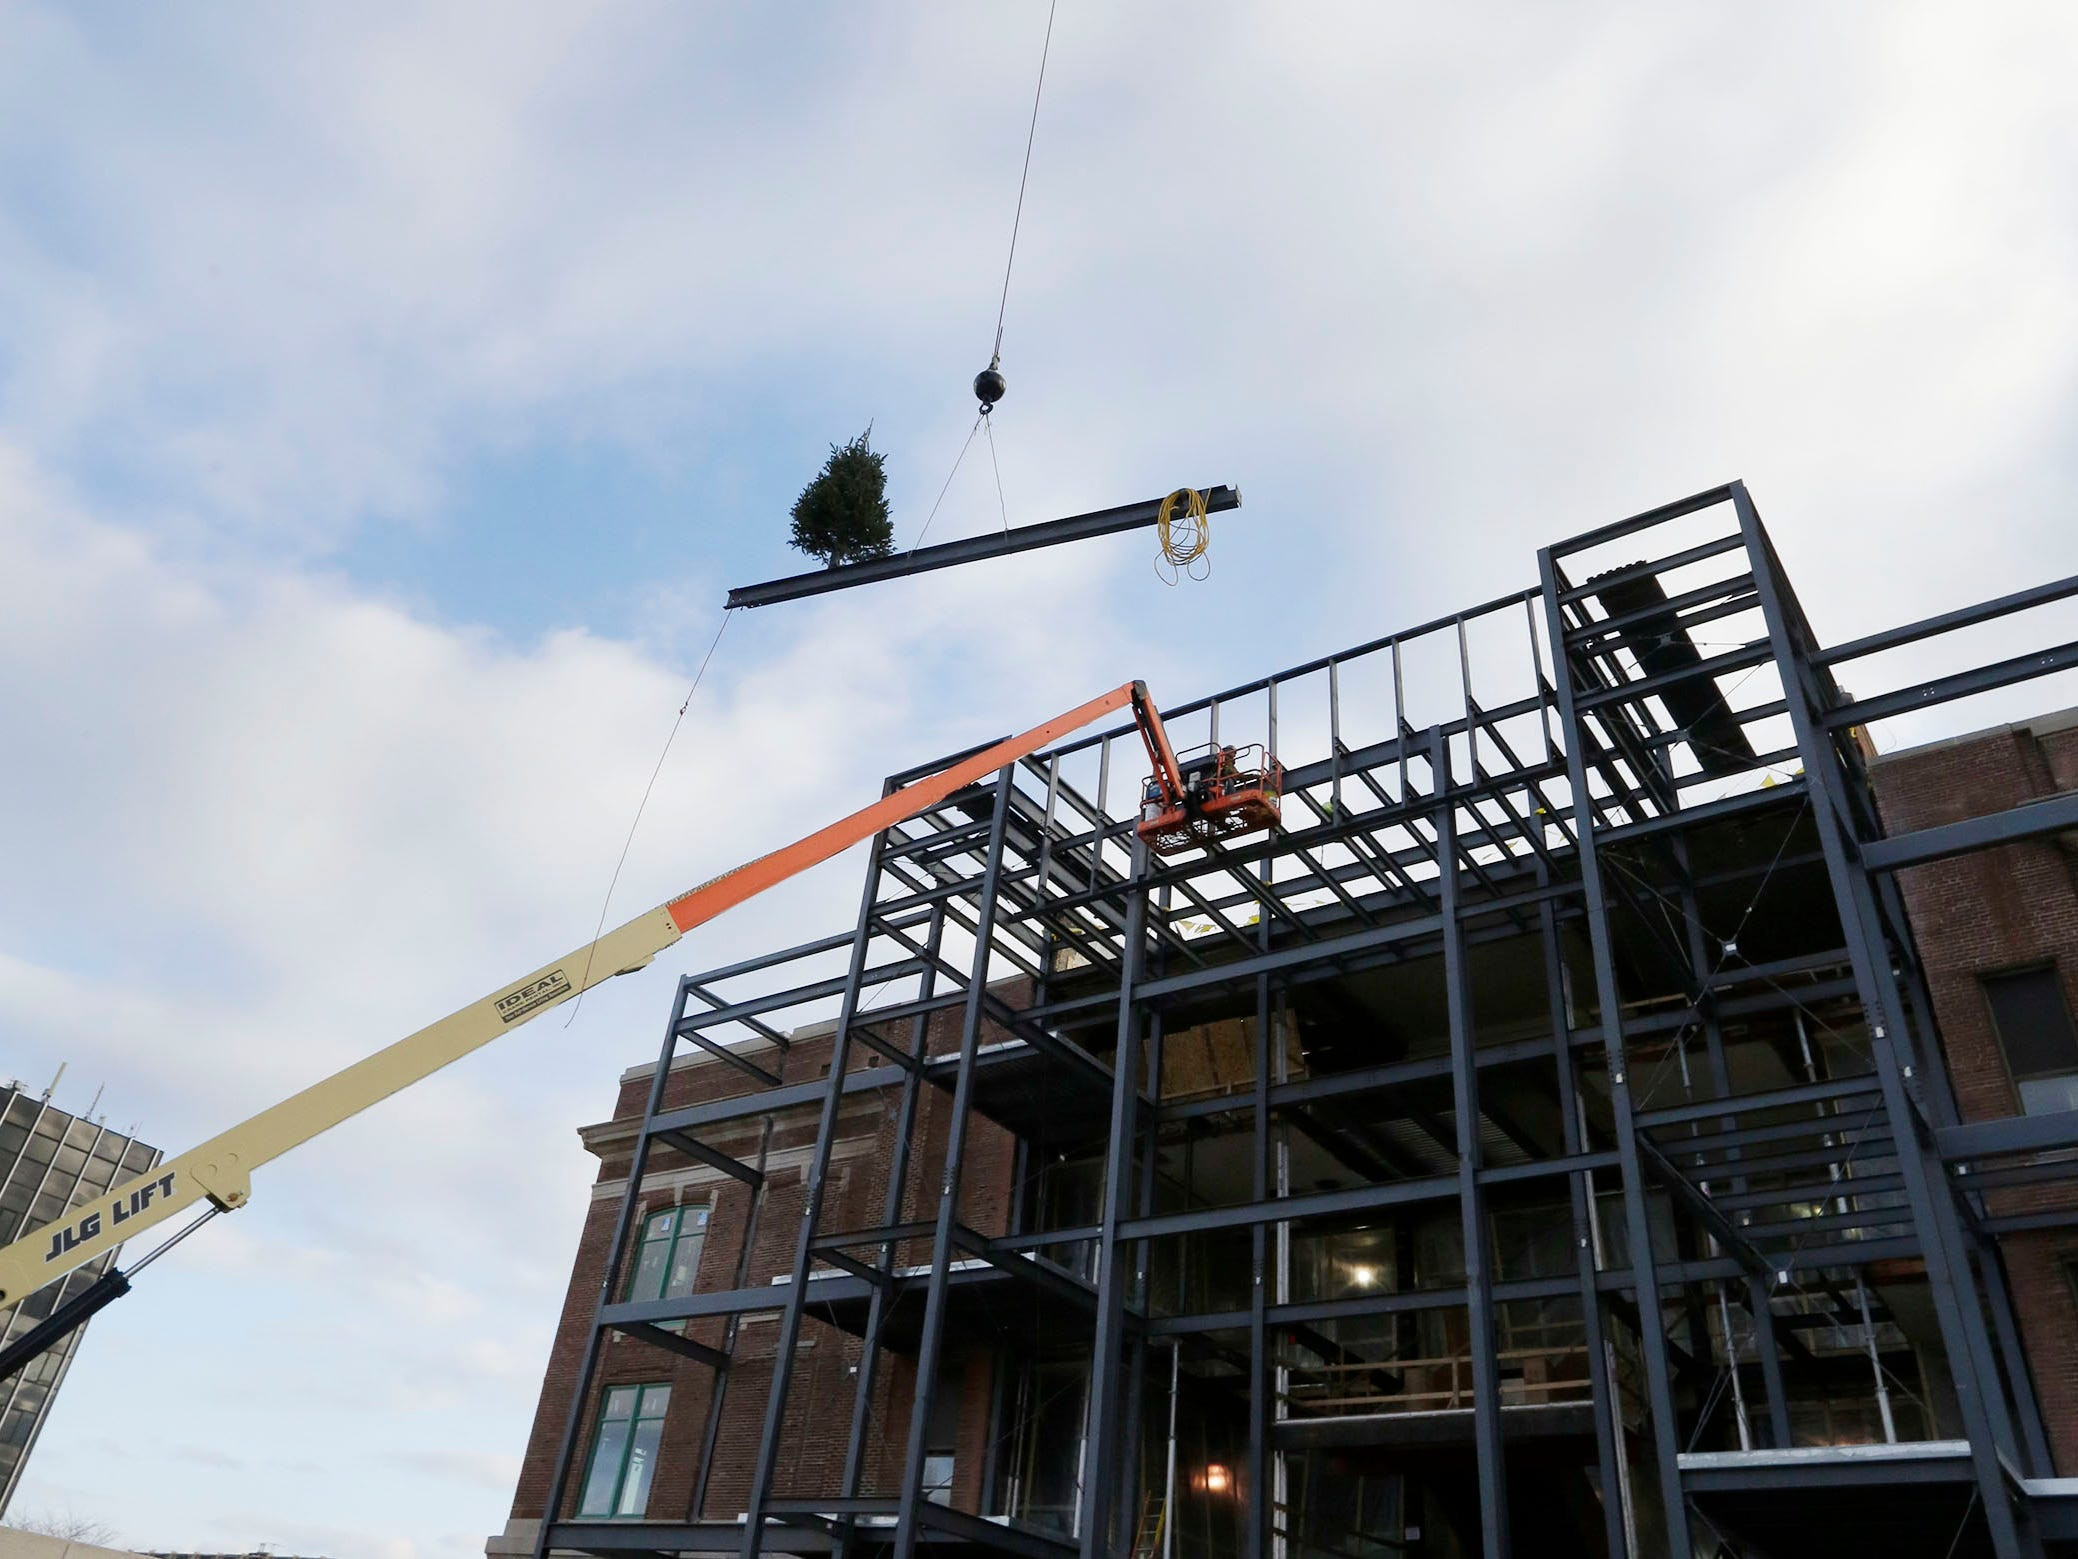 The last structural beam is elevated to the top of the new front at Sheboygan City Hall during a topping off ceremony, Wednesday, December 5, 2018, in Sheboygan, Wis.